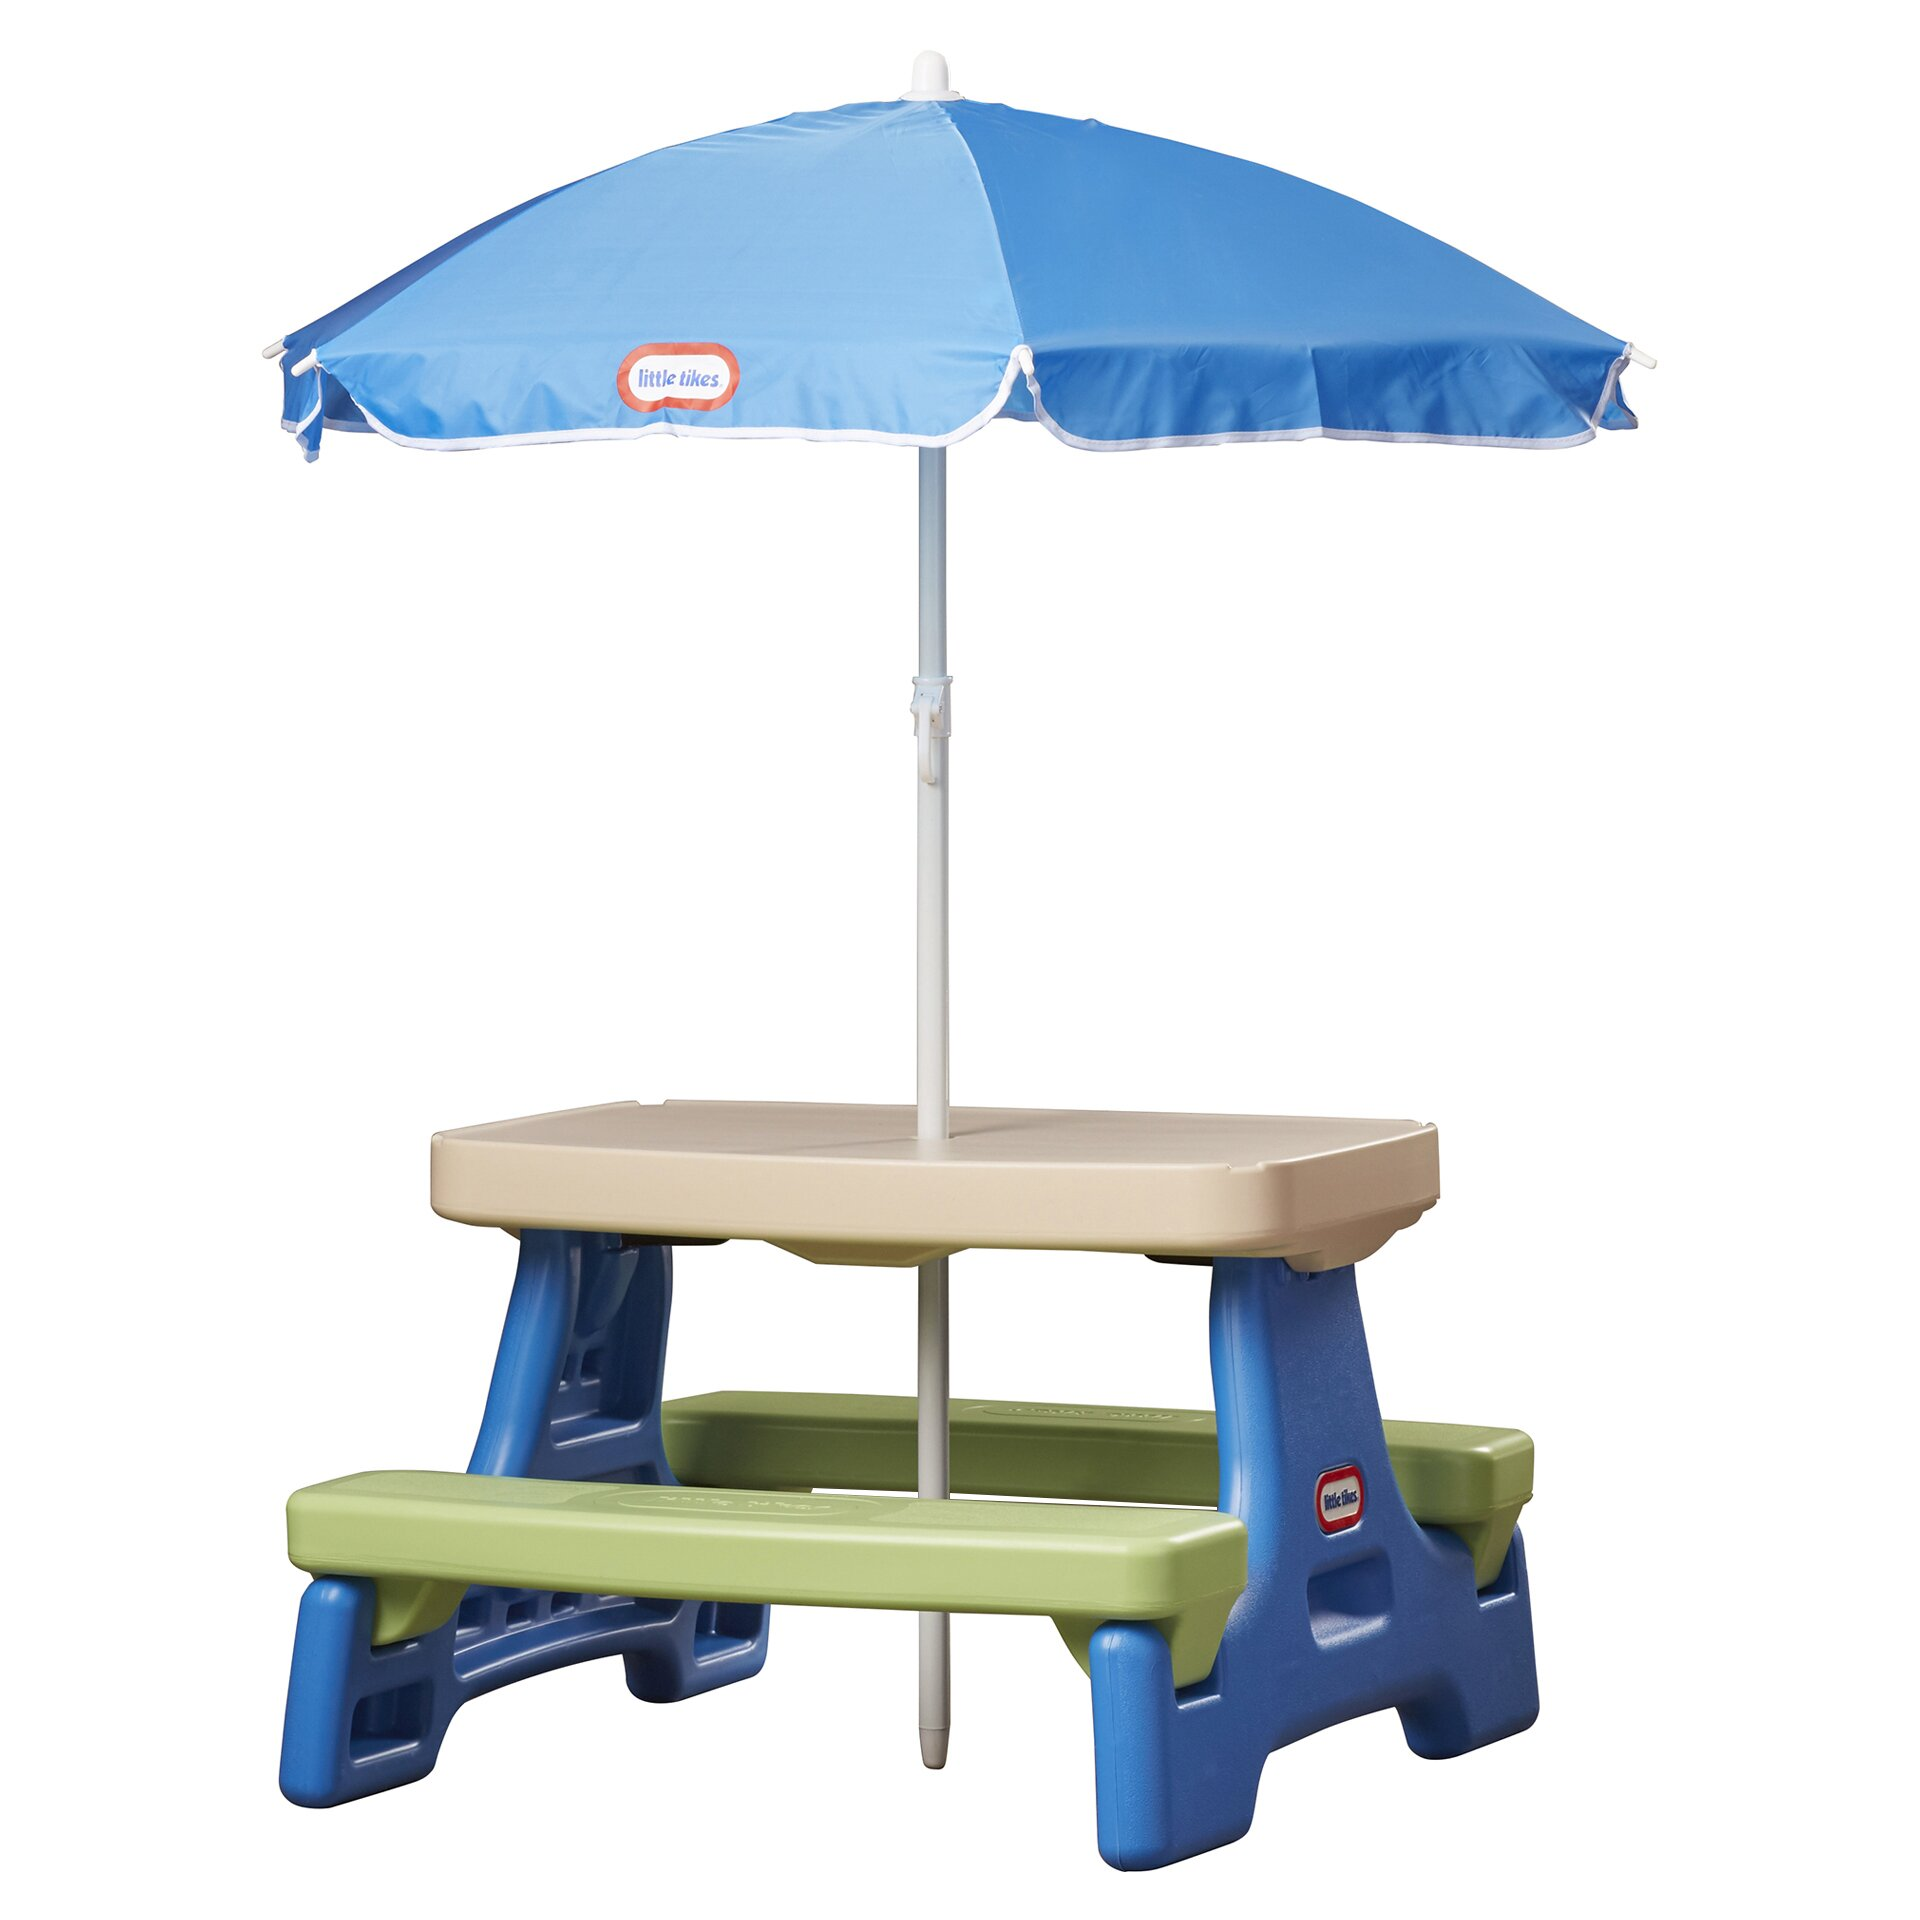 Little tikes easy store jr table with umbrella reviews for Table umbrella